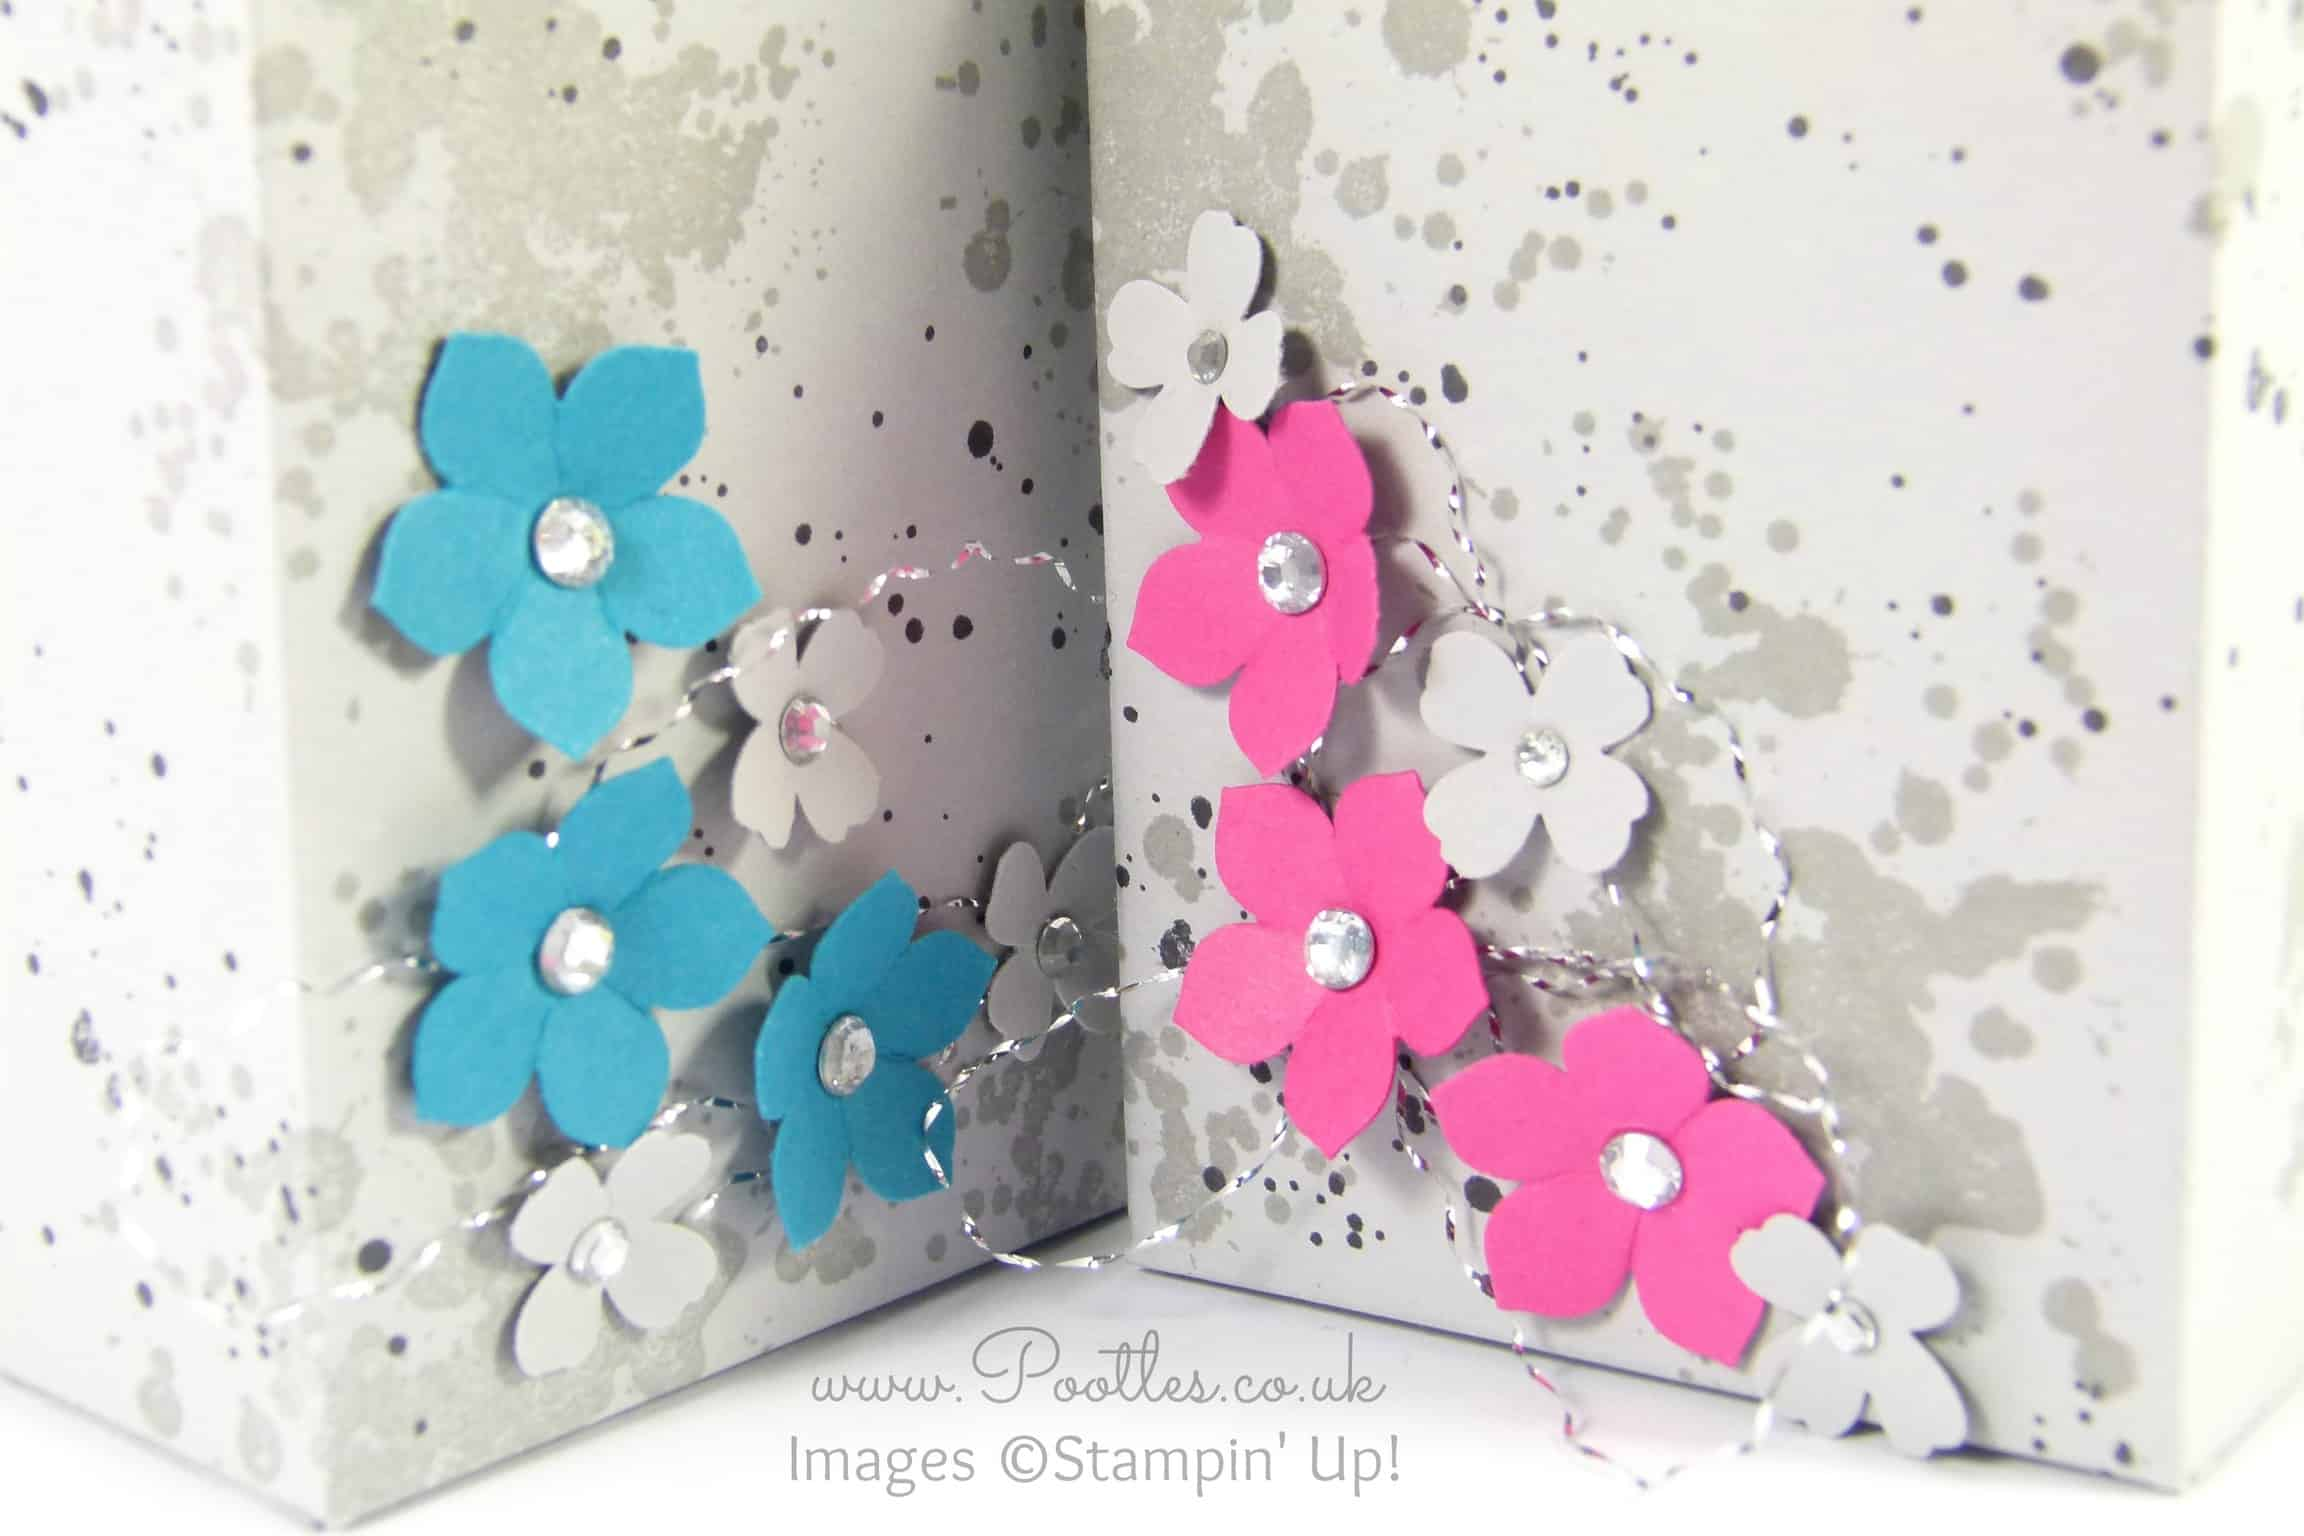 Stampin' Up! Gorgeous Grunge Flat Topped Milk Carton Tutorial